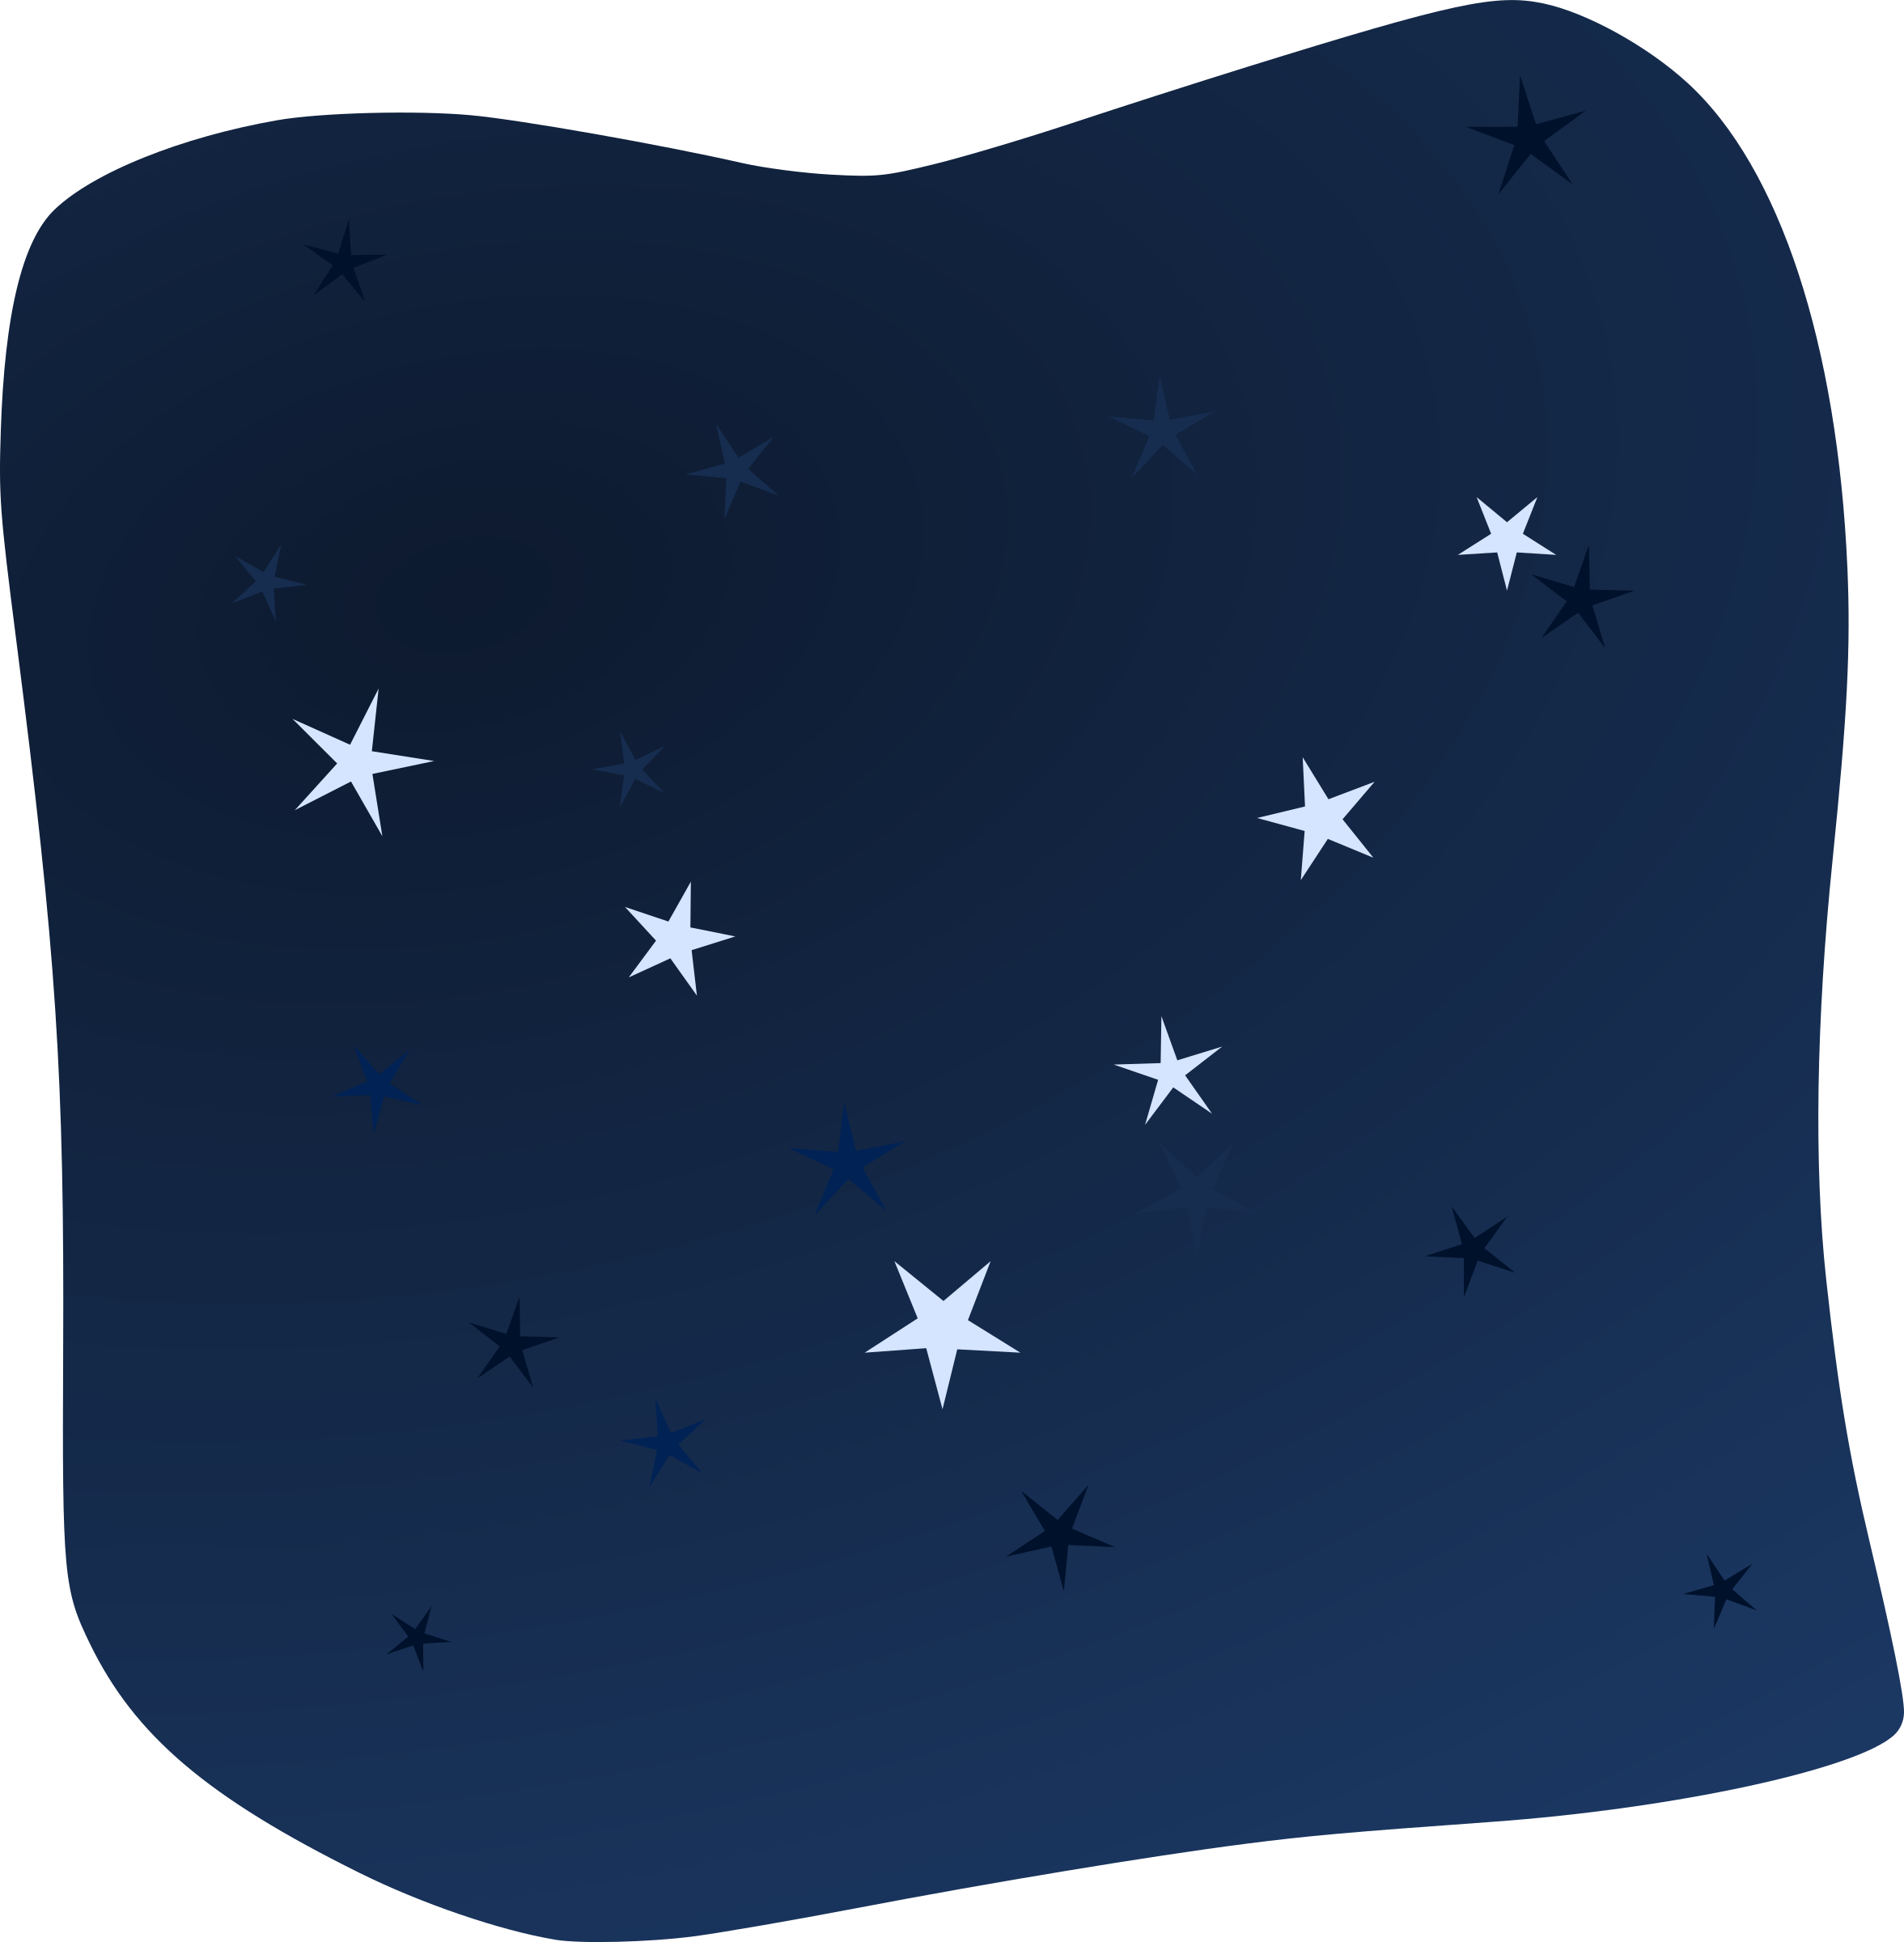 Clipart star night sky. Stars in the icons